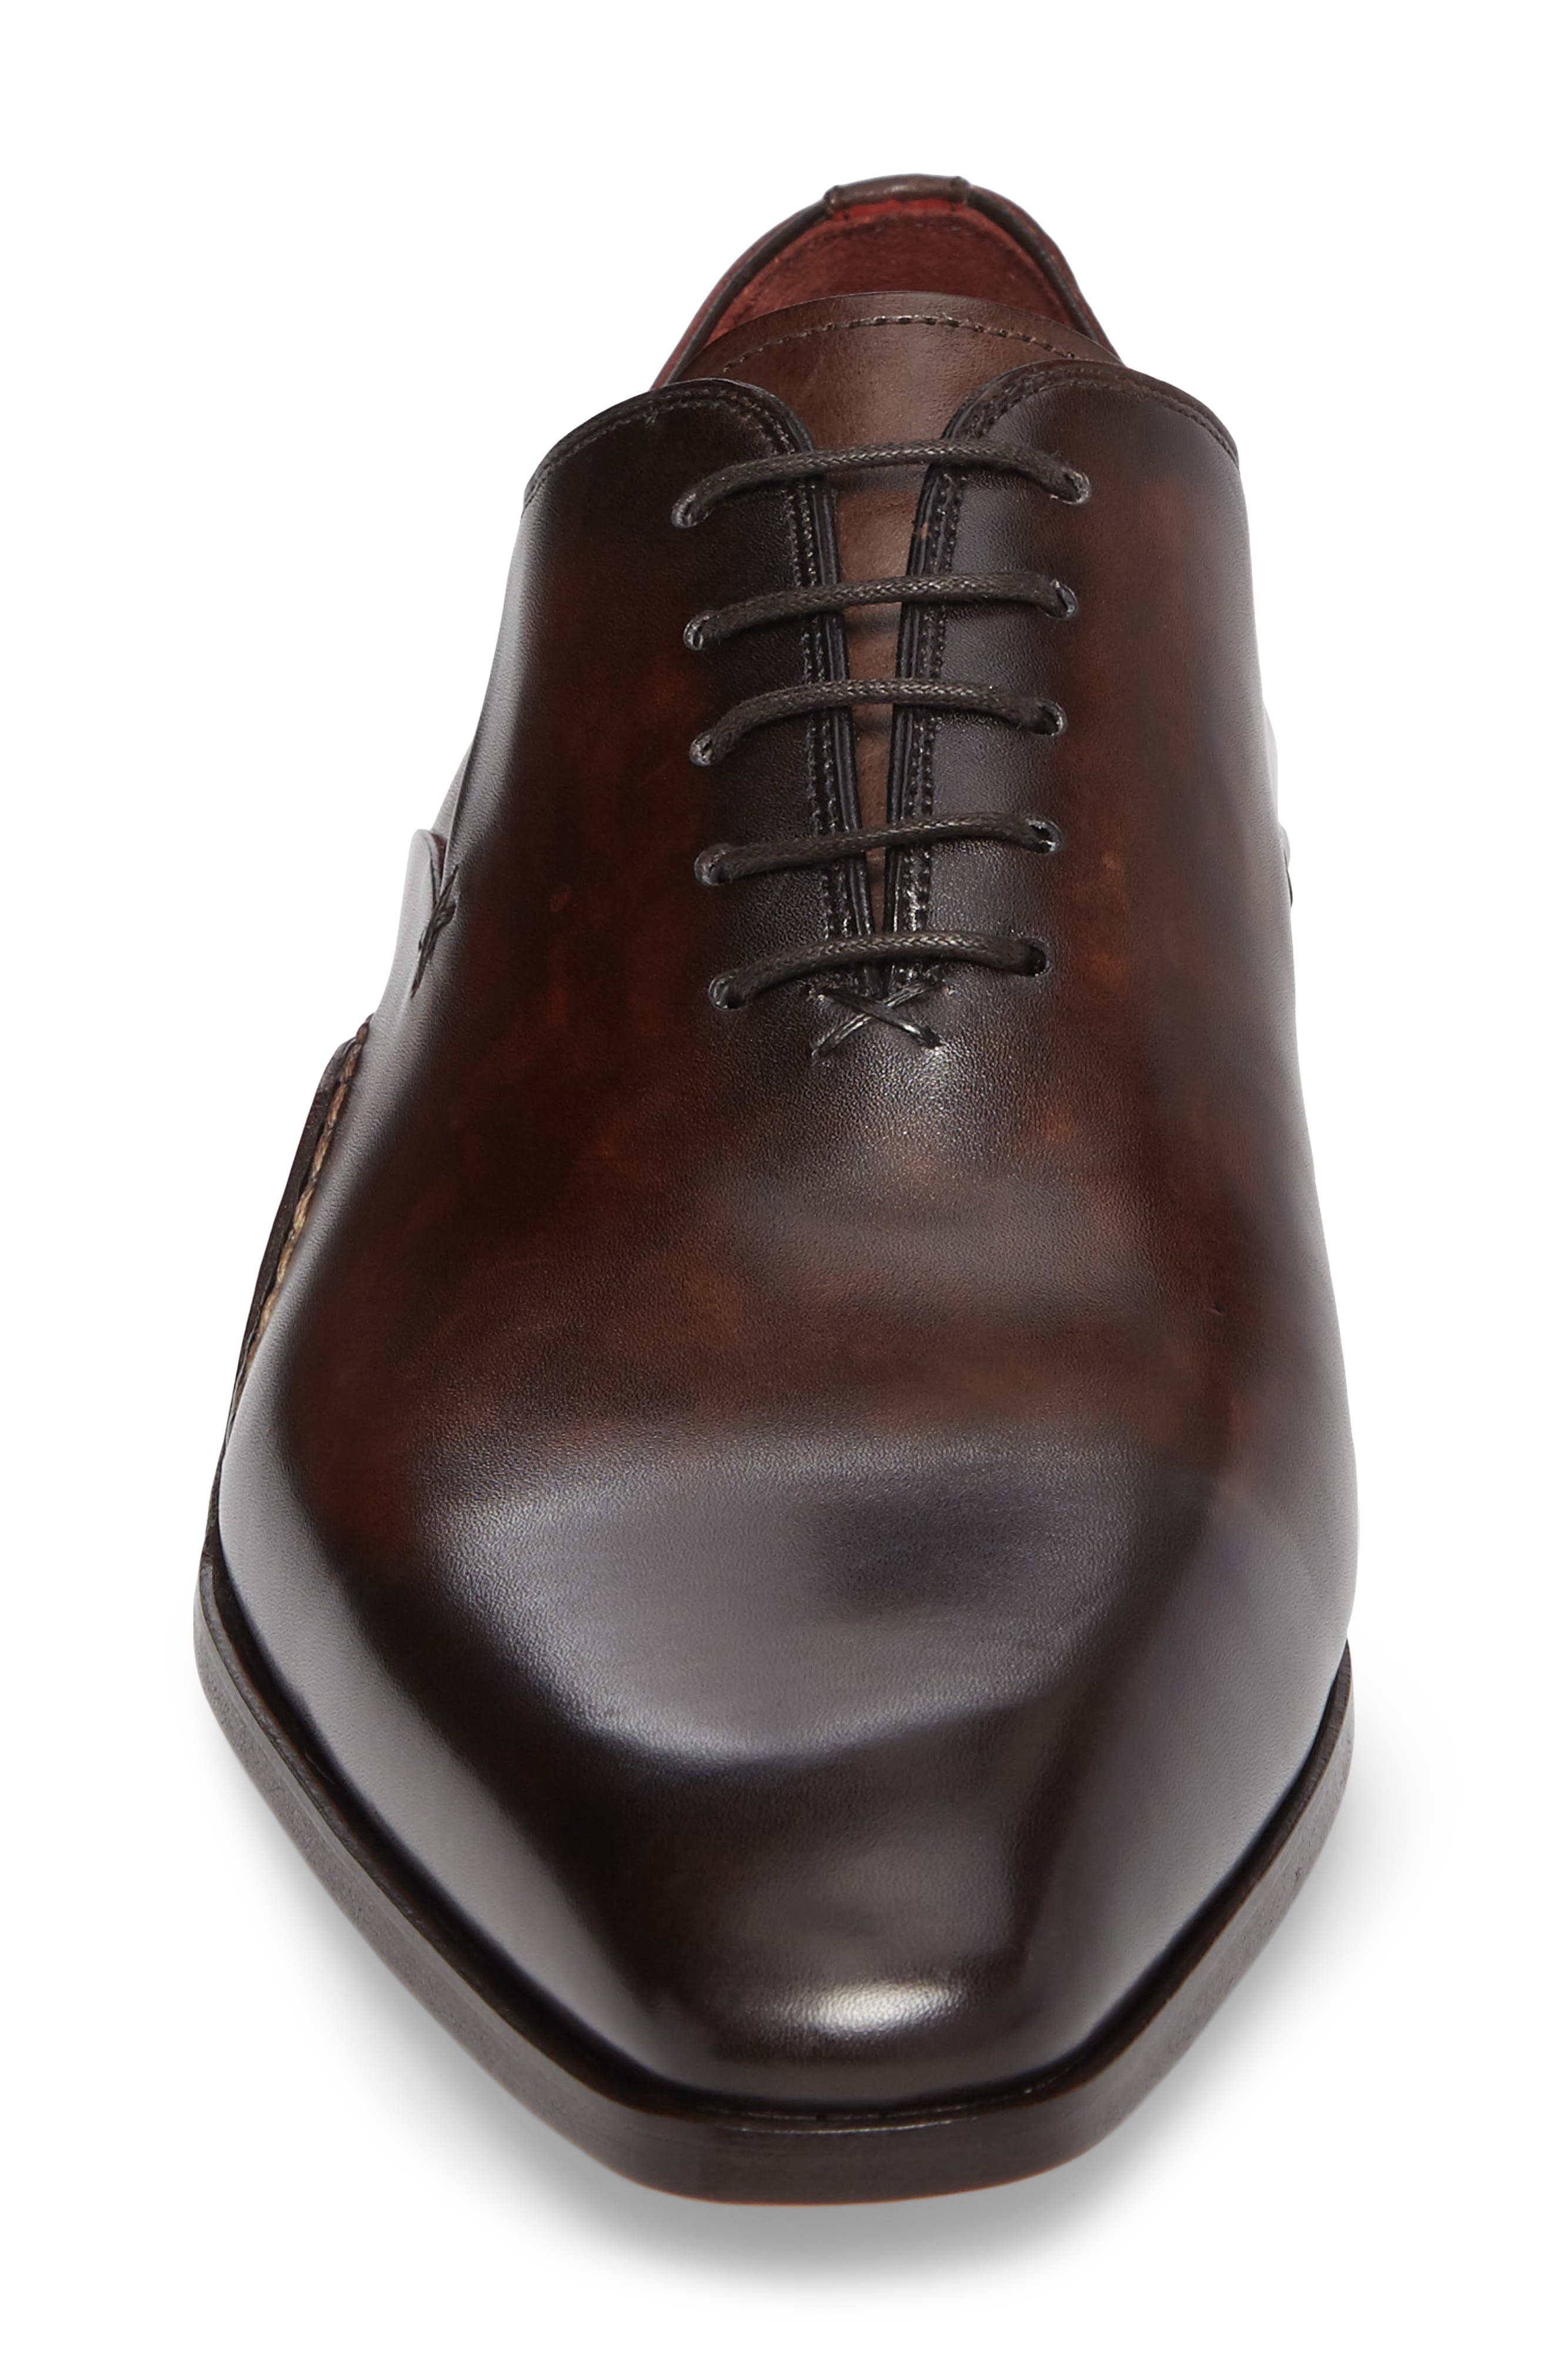 MAGNANNI, Cantabria Plain Toe Oxford, Alternate thumbnail 4, color, BROWN/ RED LEATHER